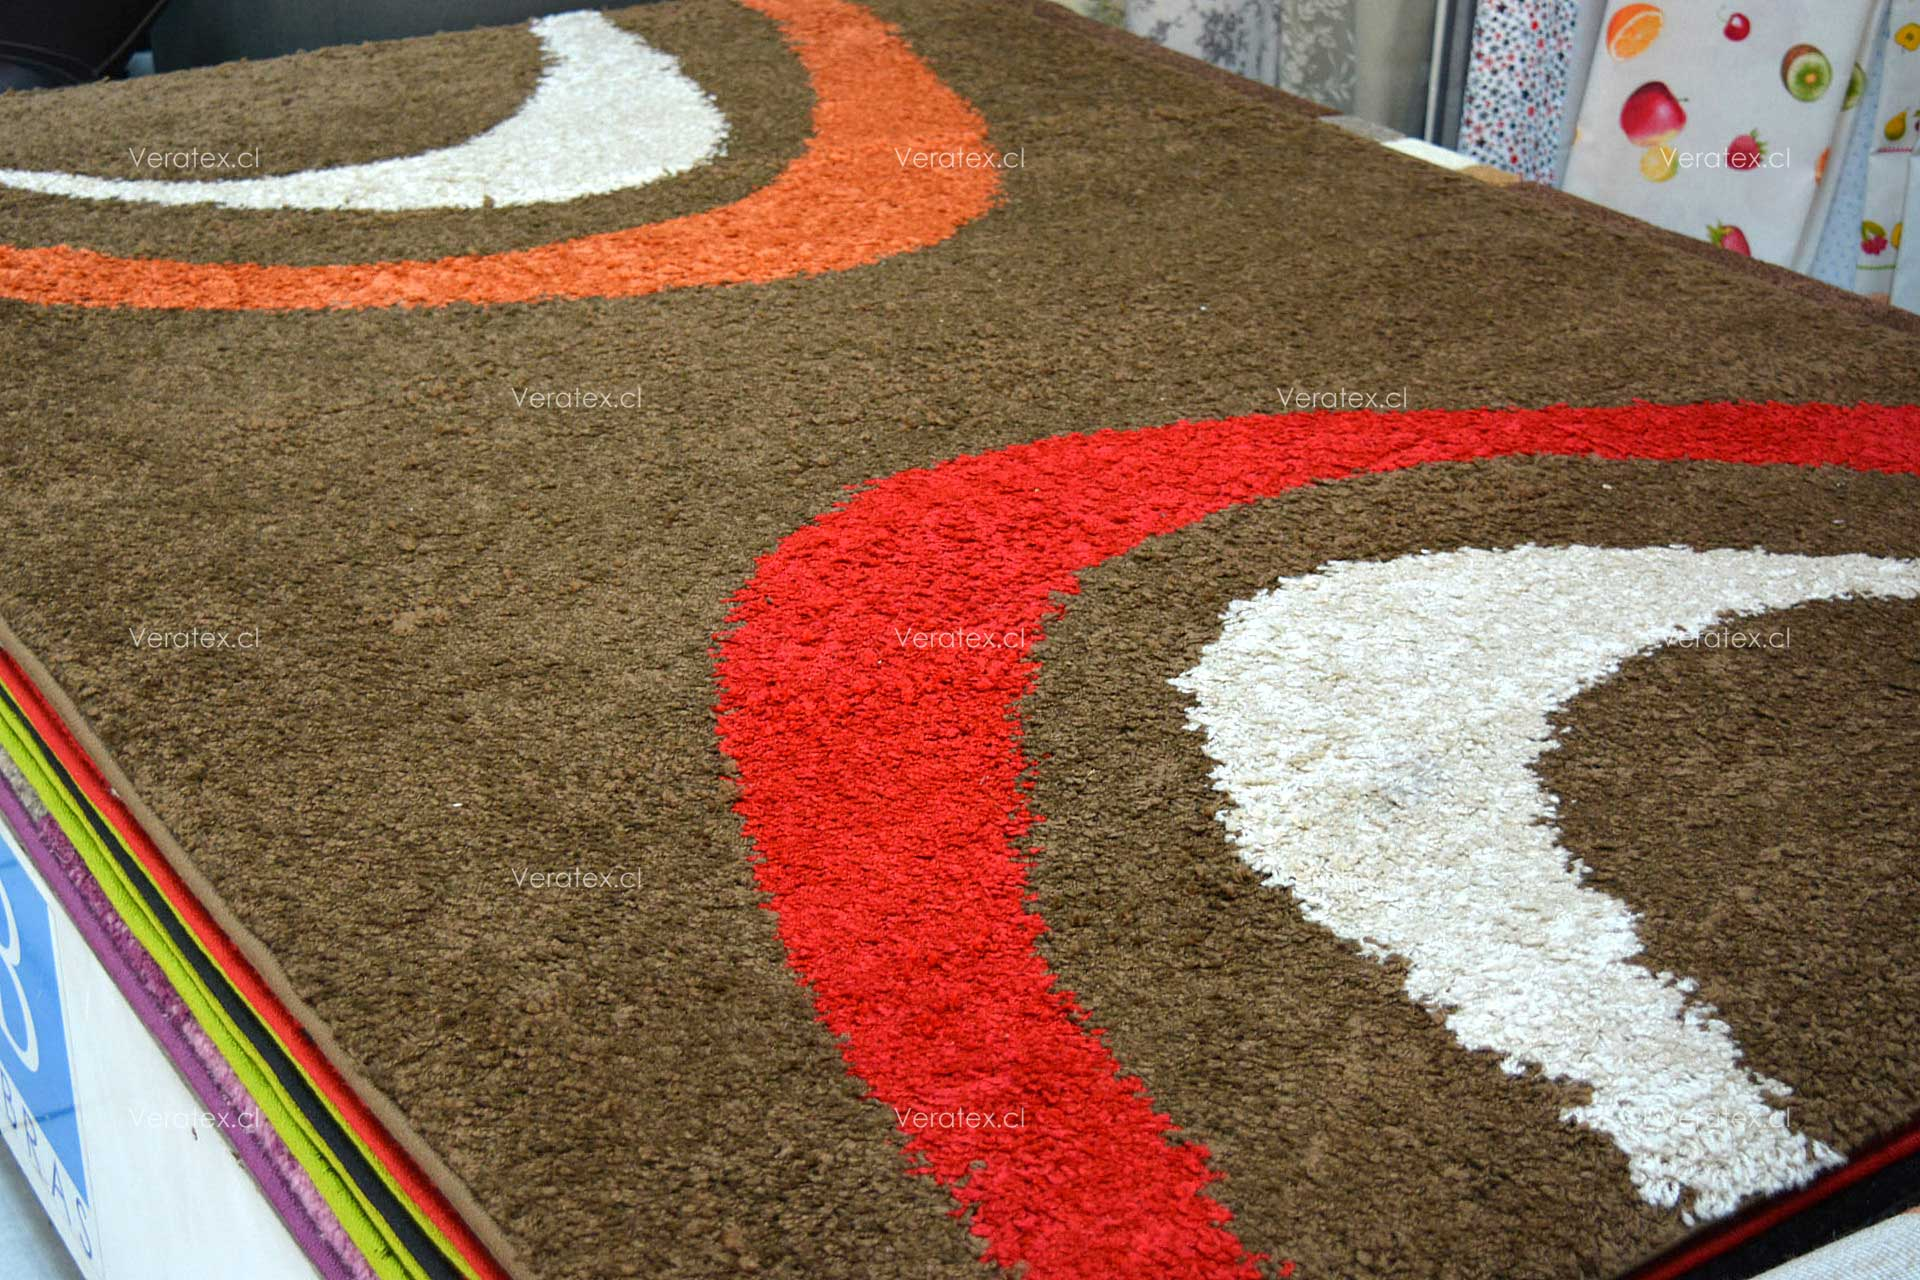 Alfombras Shaggy Touch - Dimensiones: 1,33 x 1,90 - 1,60 x 2,30 metros